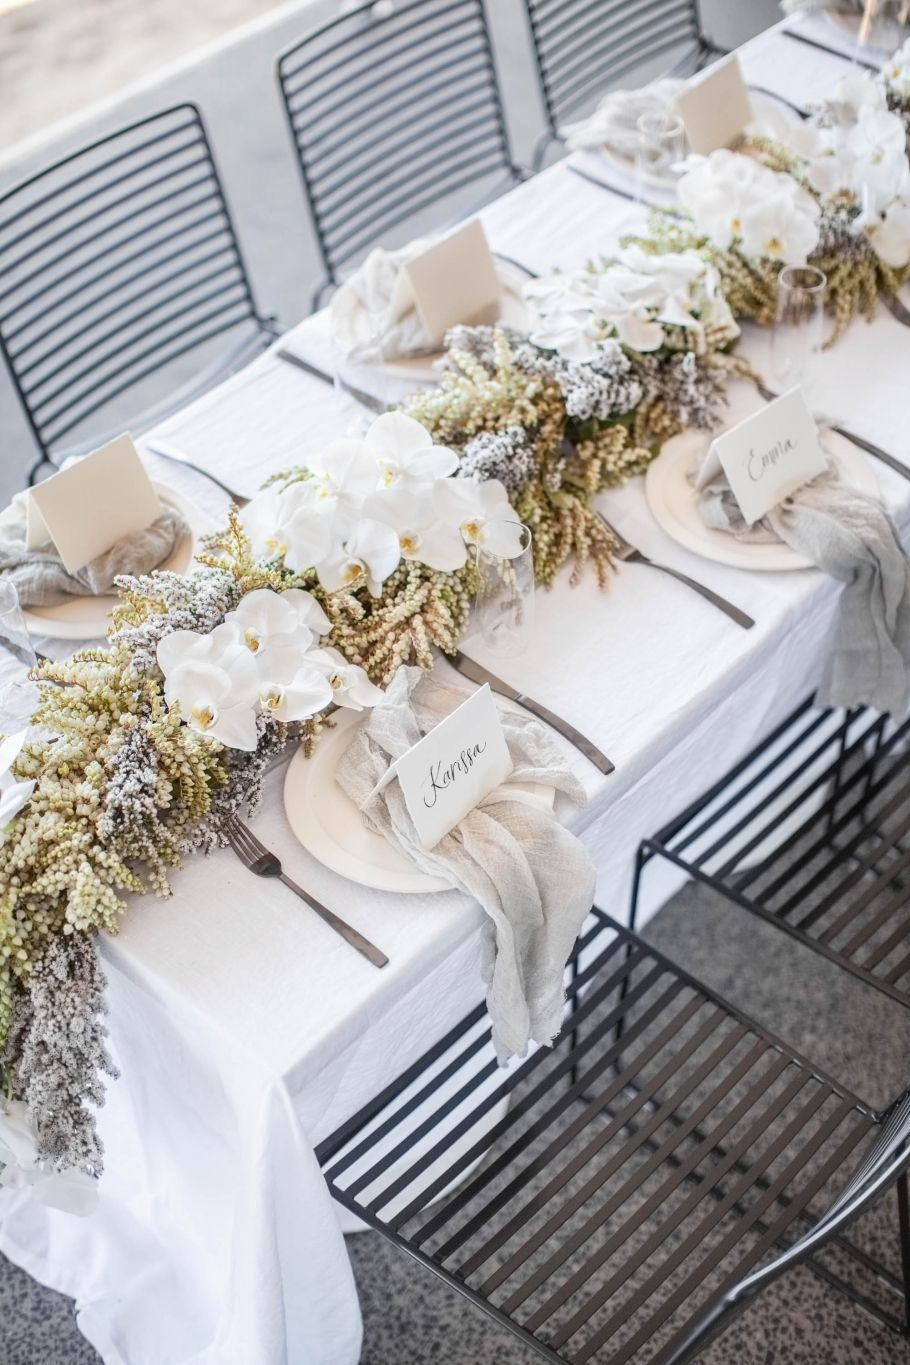 Stunning ocean inspired table setting to inspire thelane follow